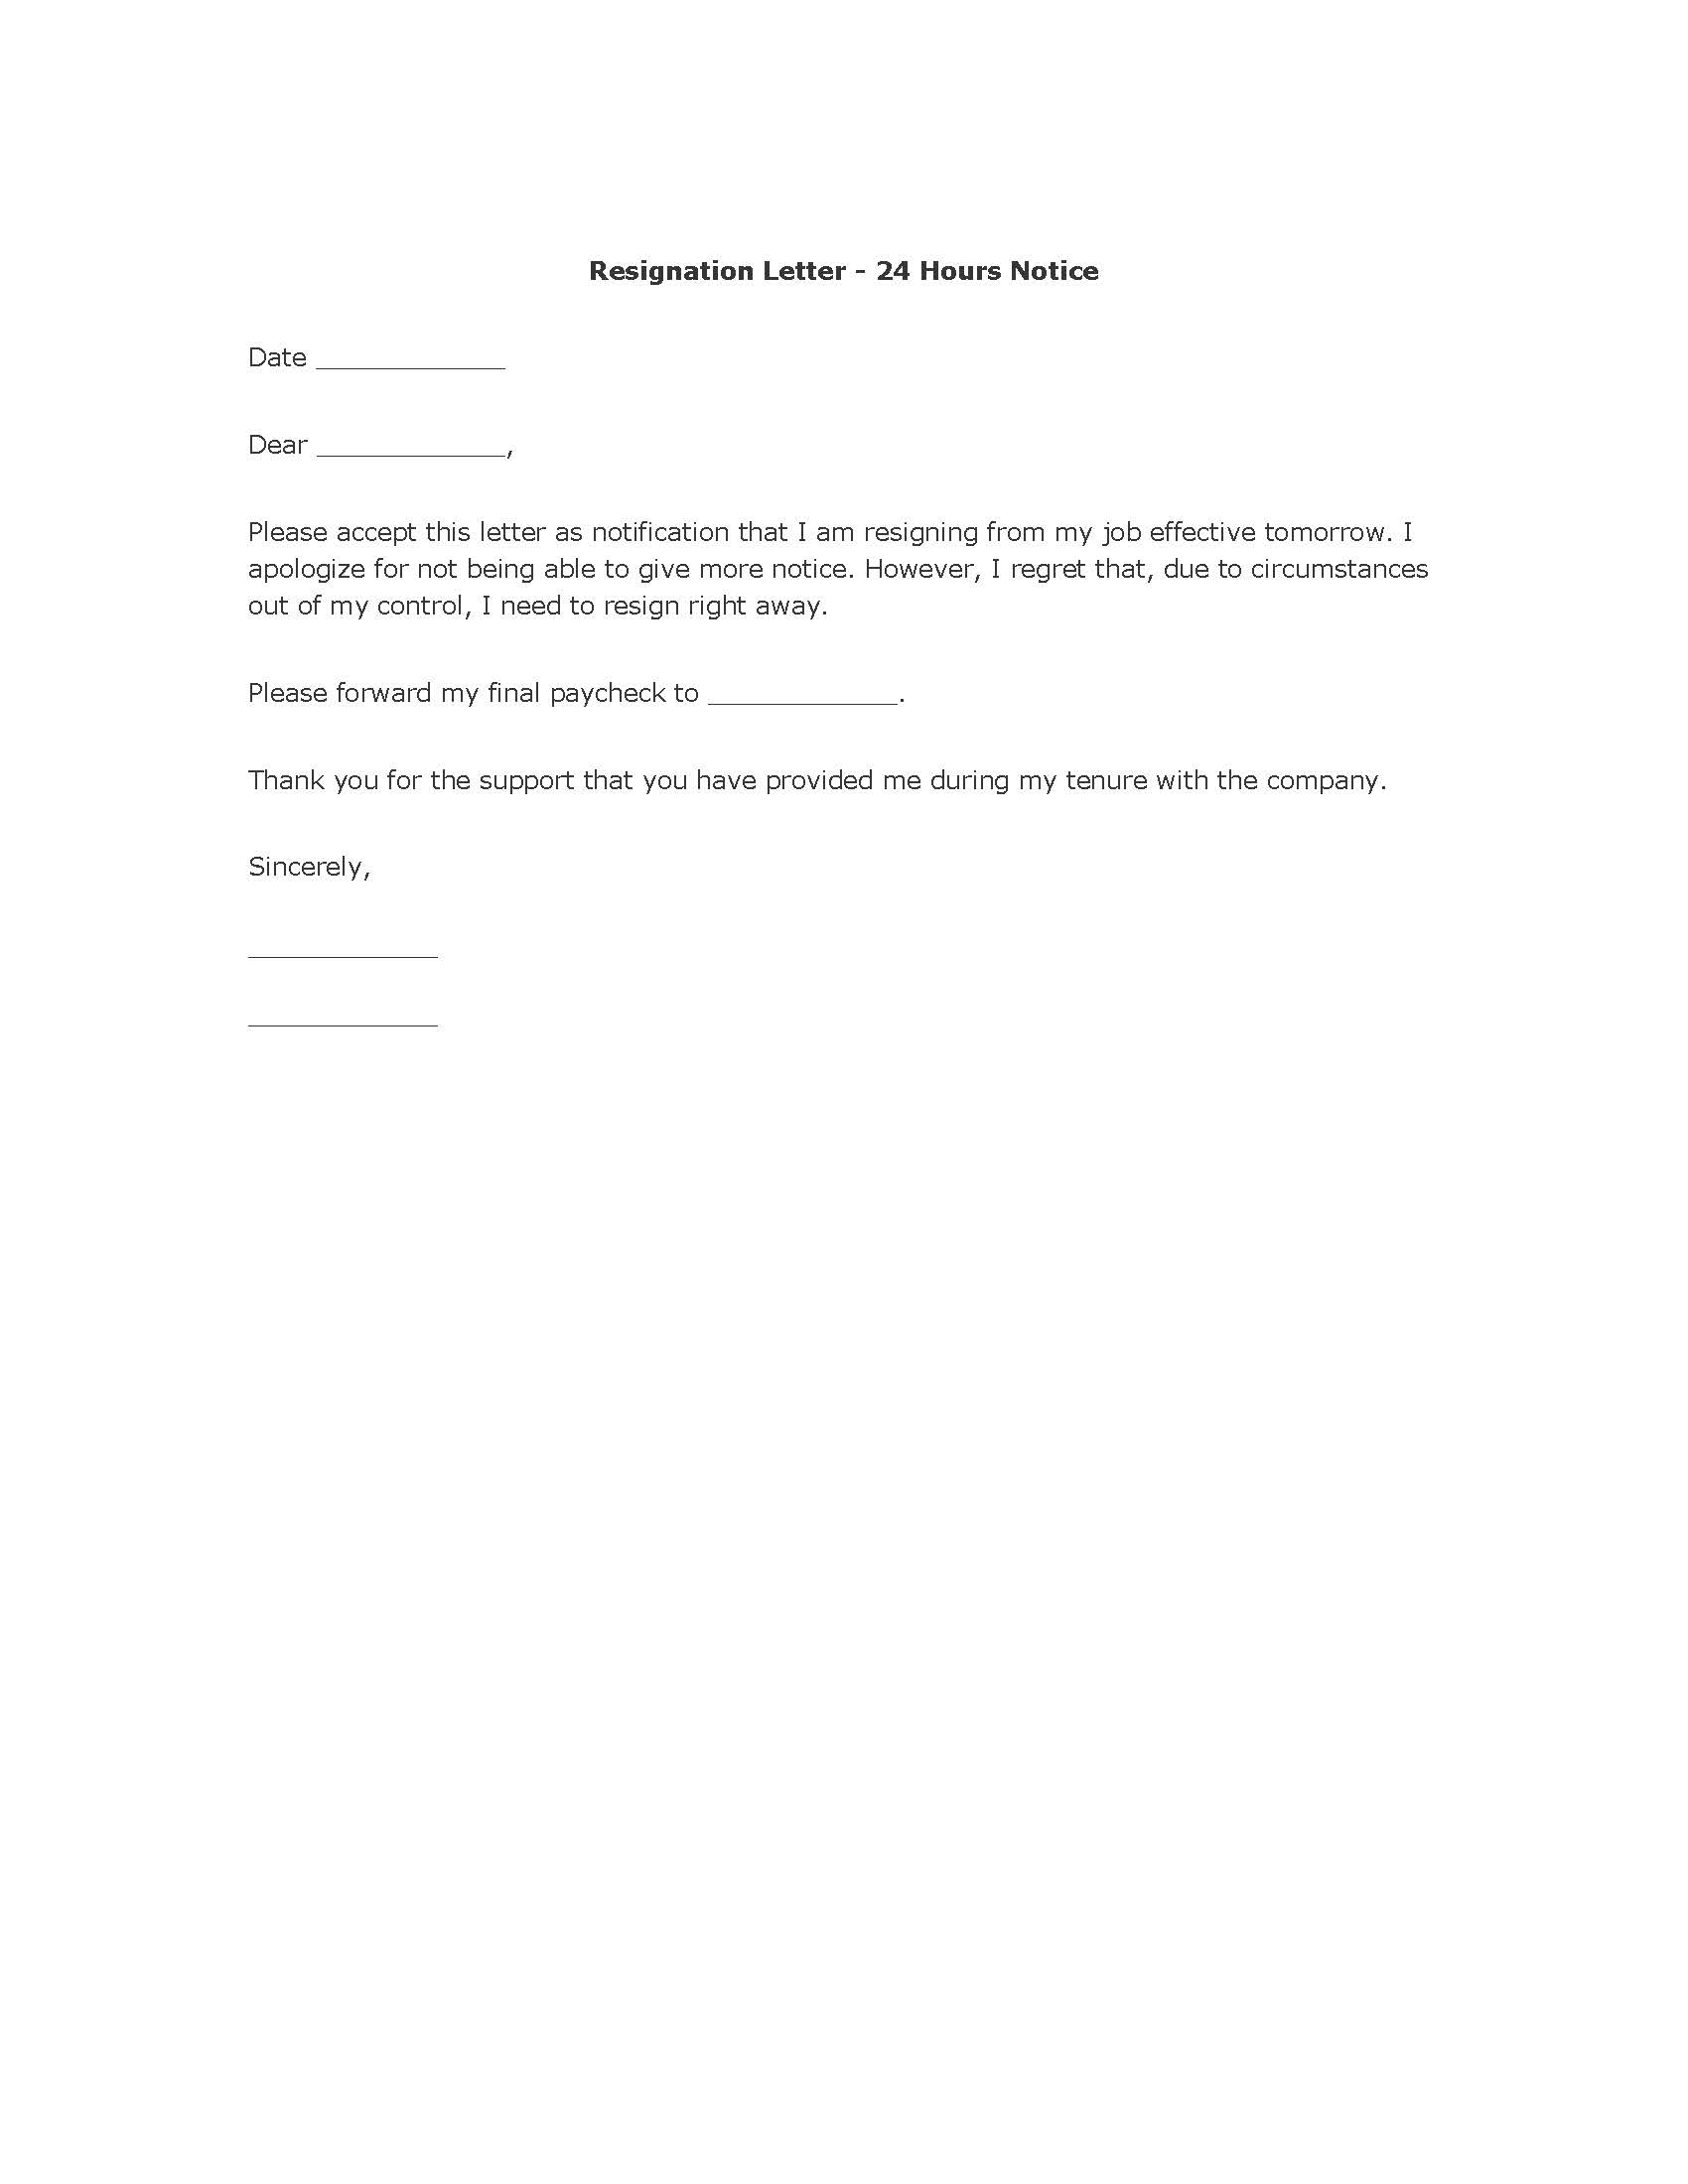 Resignation letter format call center resume pdf download resignation letter format call center free sample resignation letter job interviews resignation letters pdf resignation letter thecheapjerseys Images